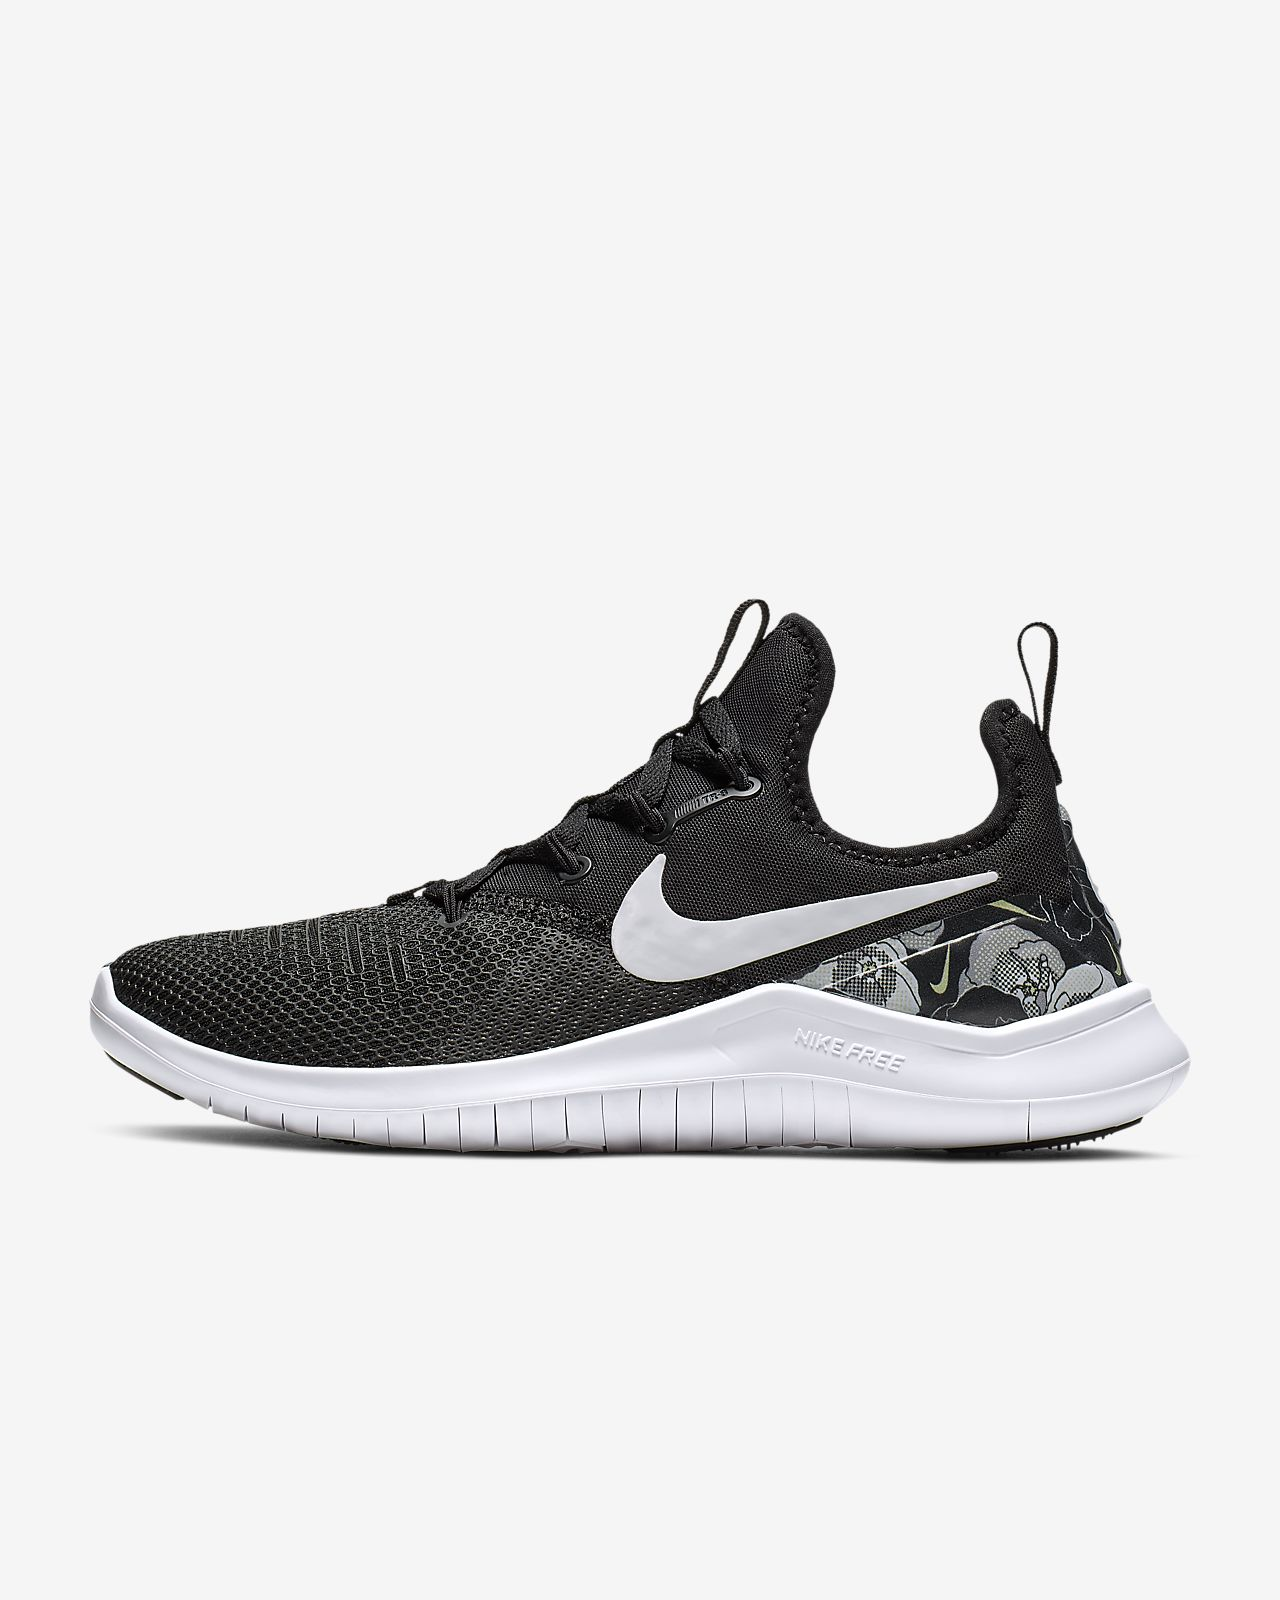 6c8836774097e Nike Free TR 8 AMP Women s Training Shoe. Nike.com